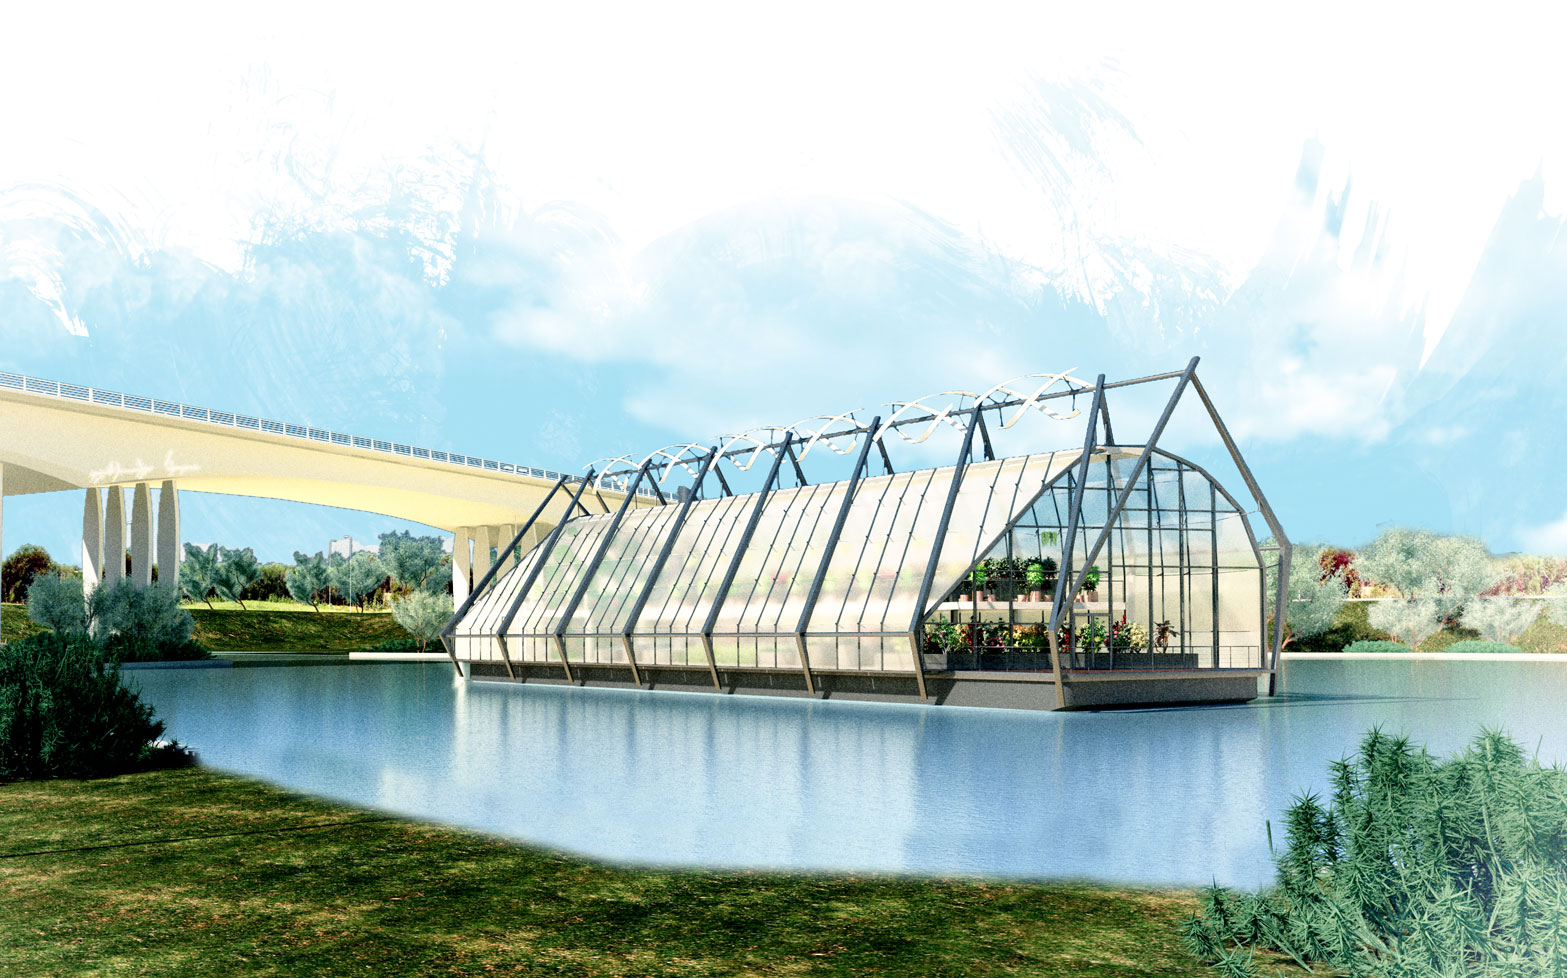 An idea from the 2013 snoLEAF greenhouse ideas competition